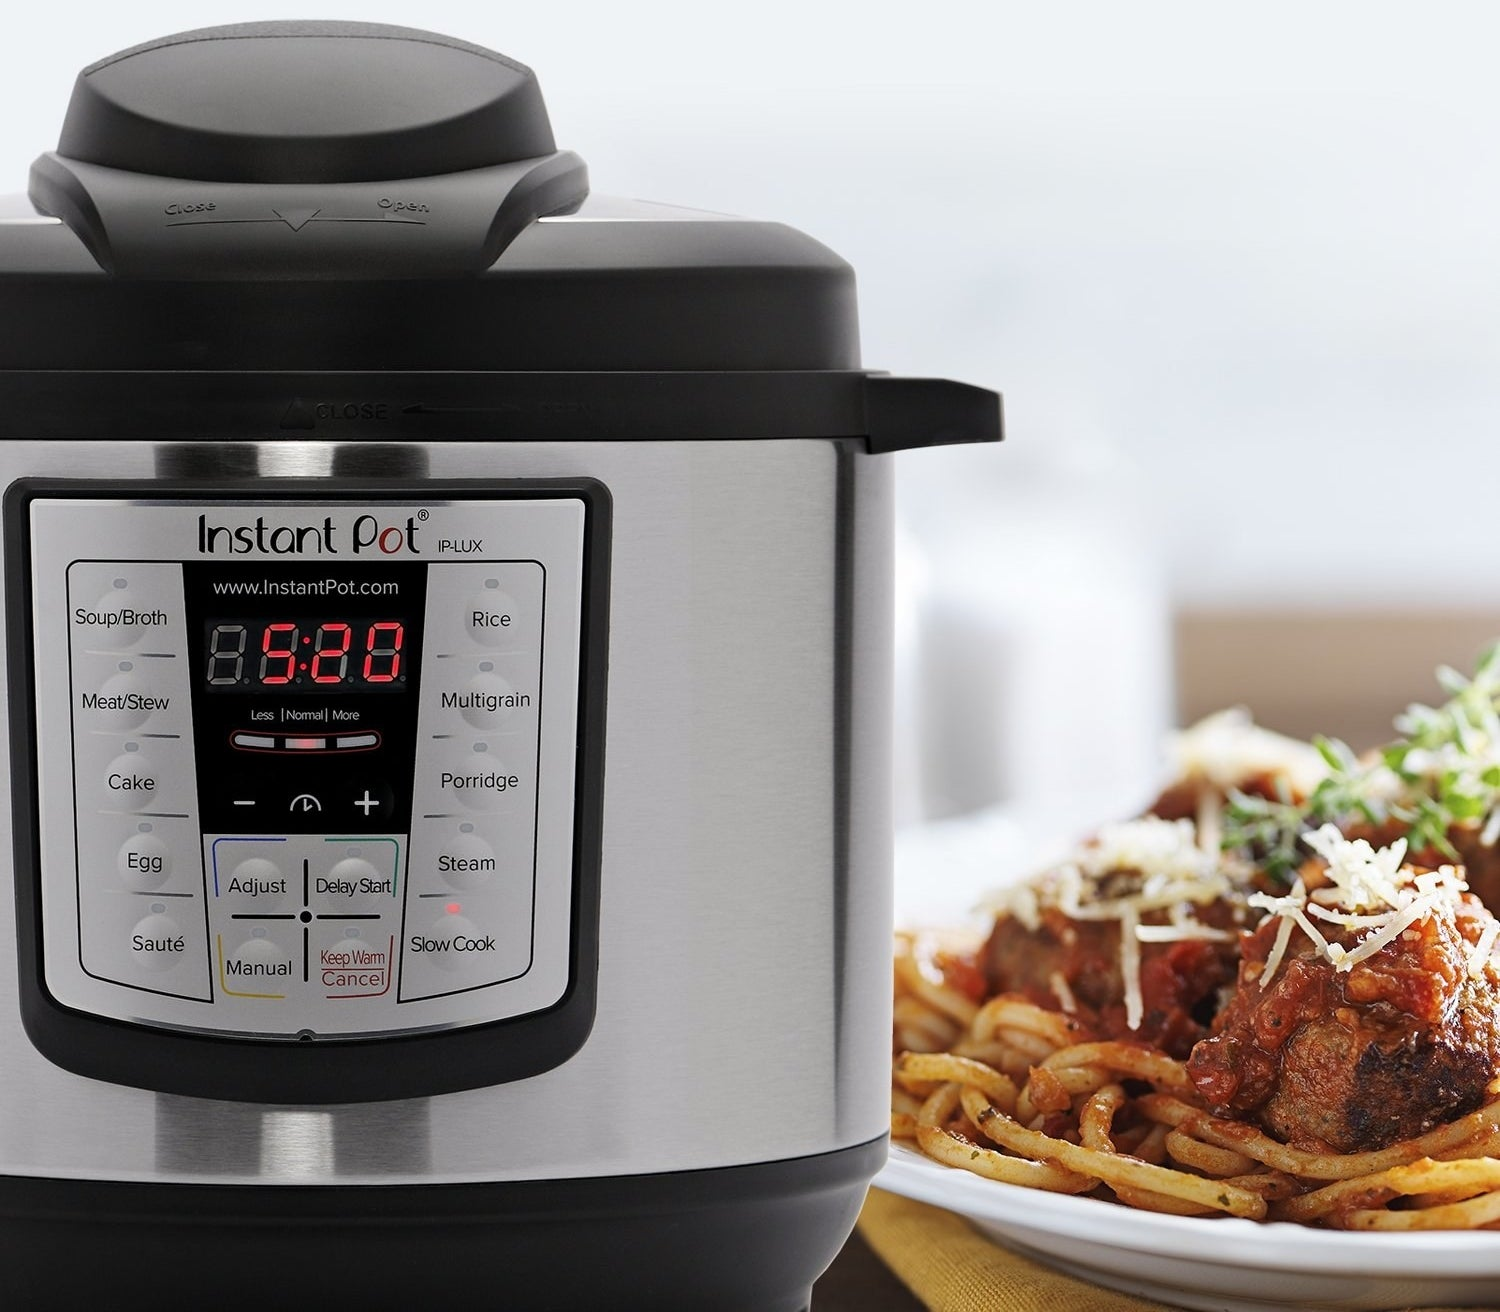 "This combines six kitchen appliances in one — it pressure cooks, slow cooks, cooks rice, sautés, steams, and warms. It reduces cooking time by 70% compared to other kitchen gadgets. It can keep food warm automatically for up to 10 hours, and there are three temperatures for sauté and slow-cook. The inner cooking pot, lid, and steam-rack are dishwasher-safe!Promising review: ""This is probably the only kitchen appliance I've ever bought that has earned permanent status on my kitchen counter. I use it at least three times a week. It's particularly perfect for vegans and WFPB-eaters. I can cook beans and grains from scratch in no time! Such a wonderful investment. I liked it so much that I got one for each of my sisters for the holidays. Best. Thing. Ever."" —cynthia w. rogersCheck out our review of the incredible Instant Pot!Get it from Amazon for $59.95+ (available in three sizes)."